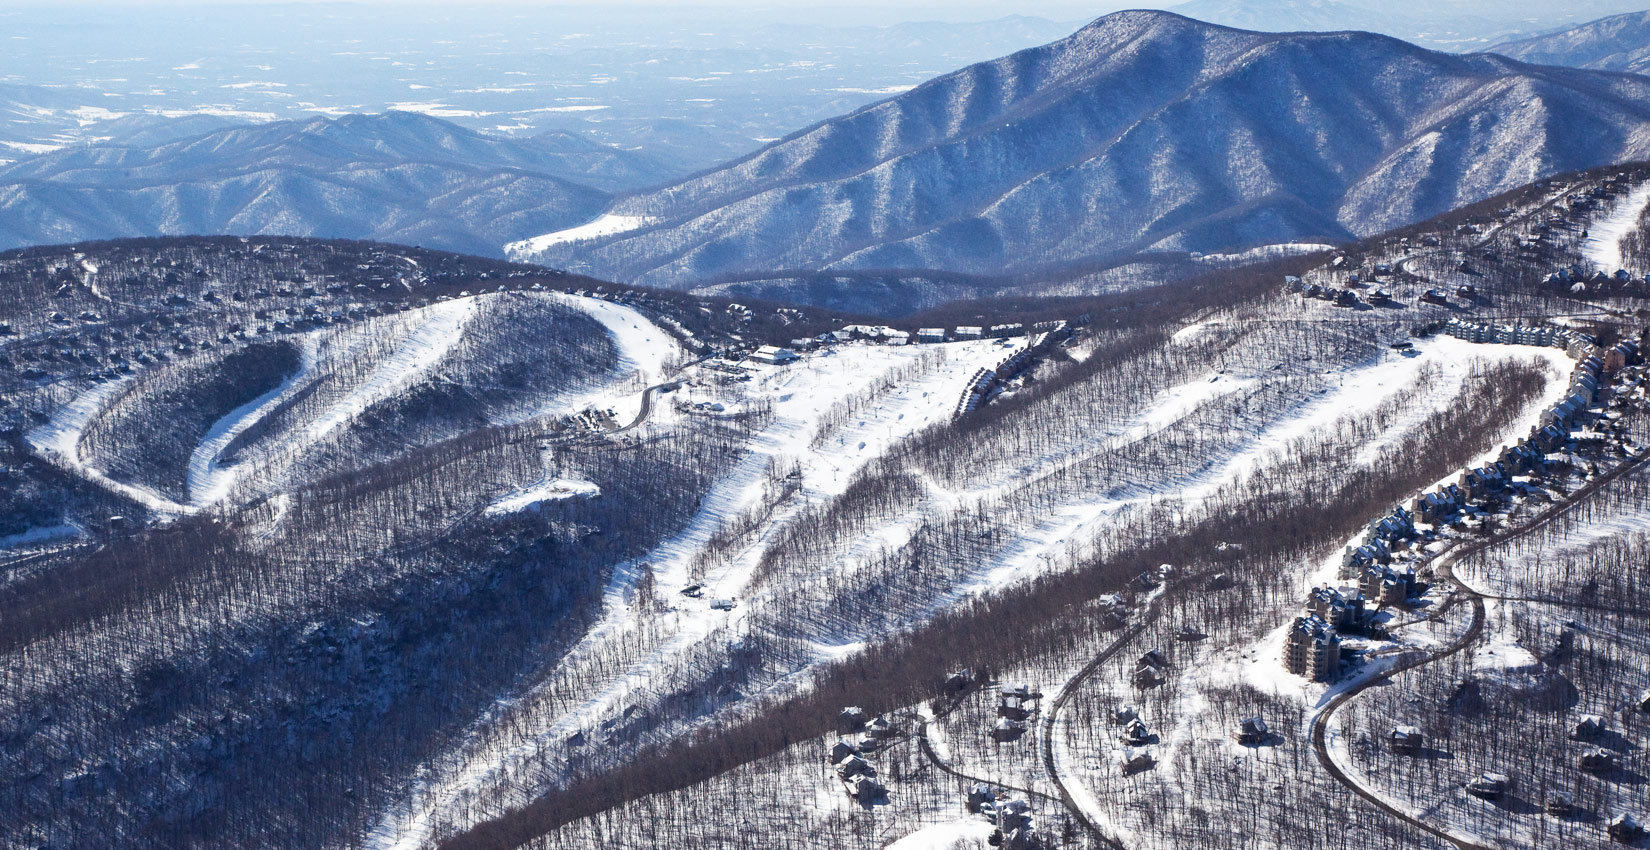 Blue Ridge Mountain Skiing and SNowboarding at Wintergreen Resort